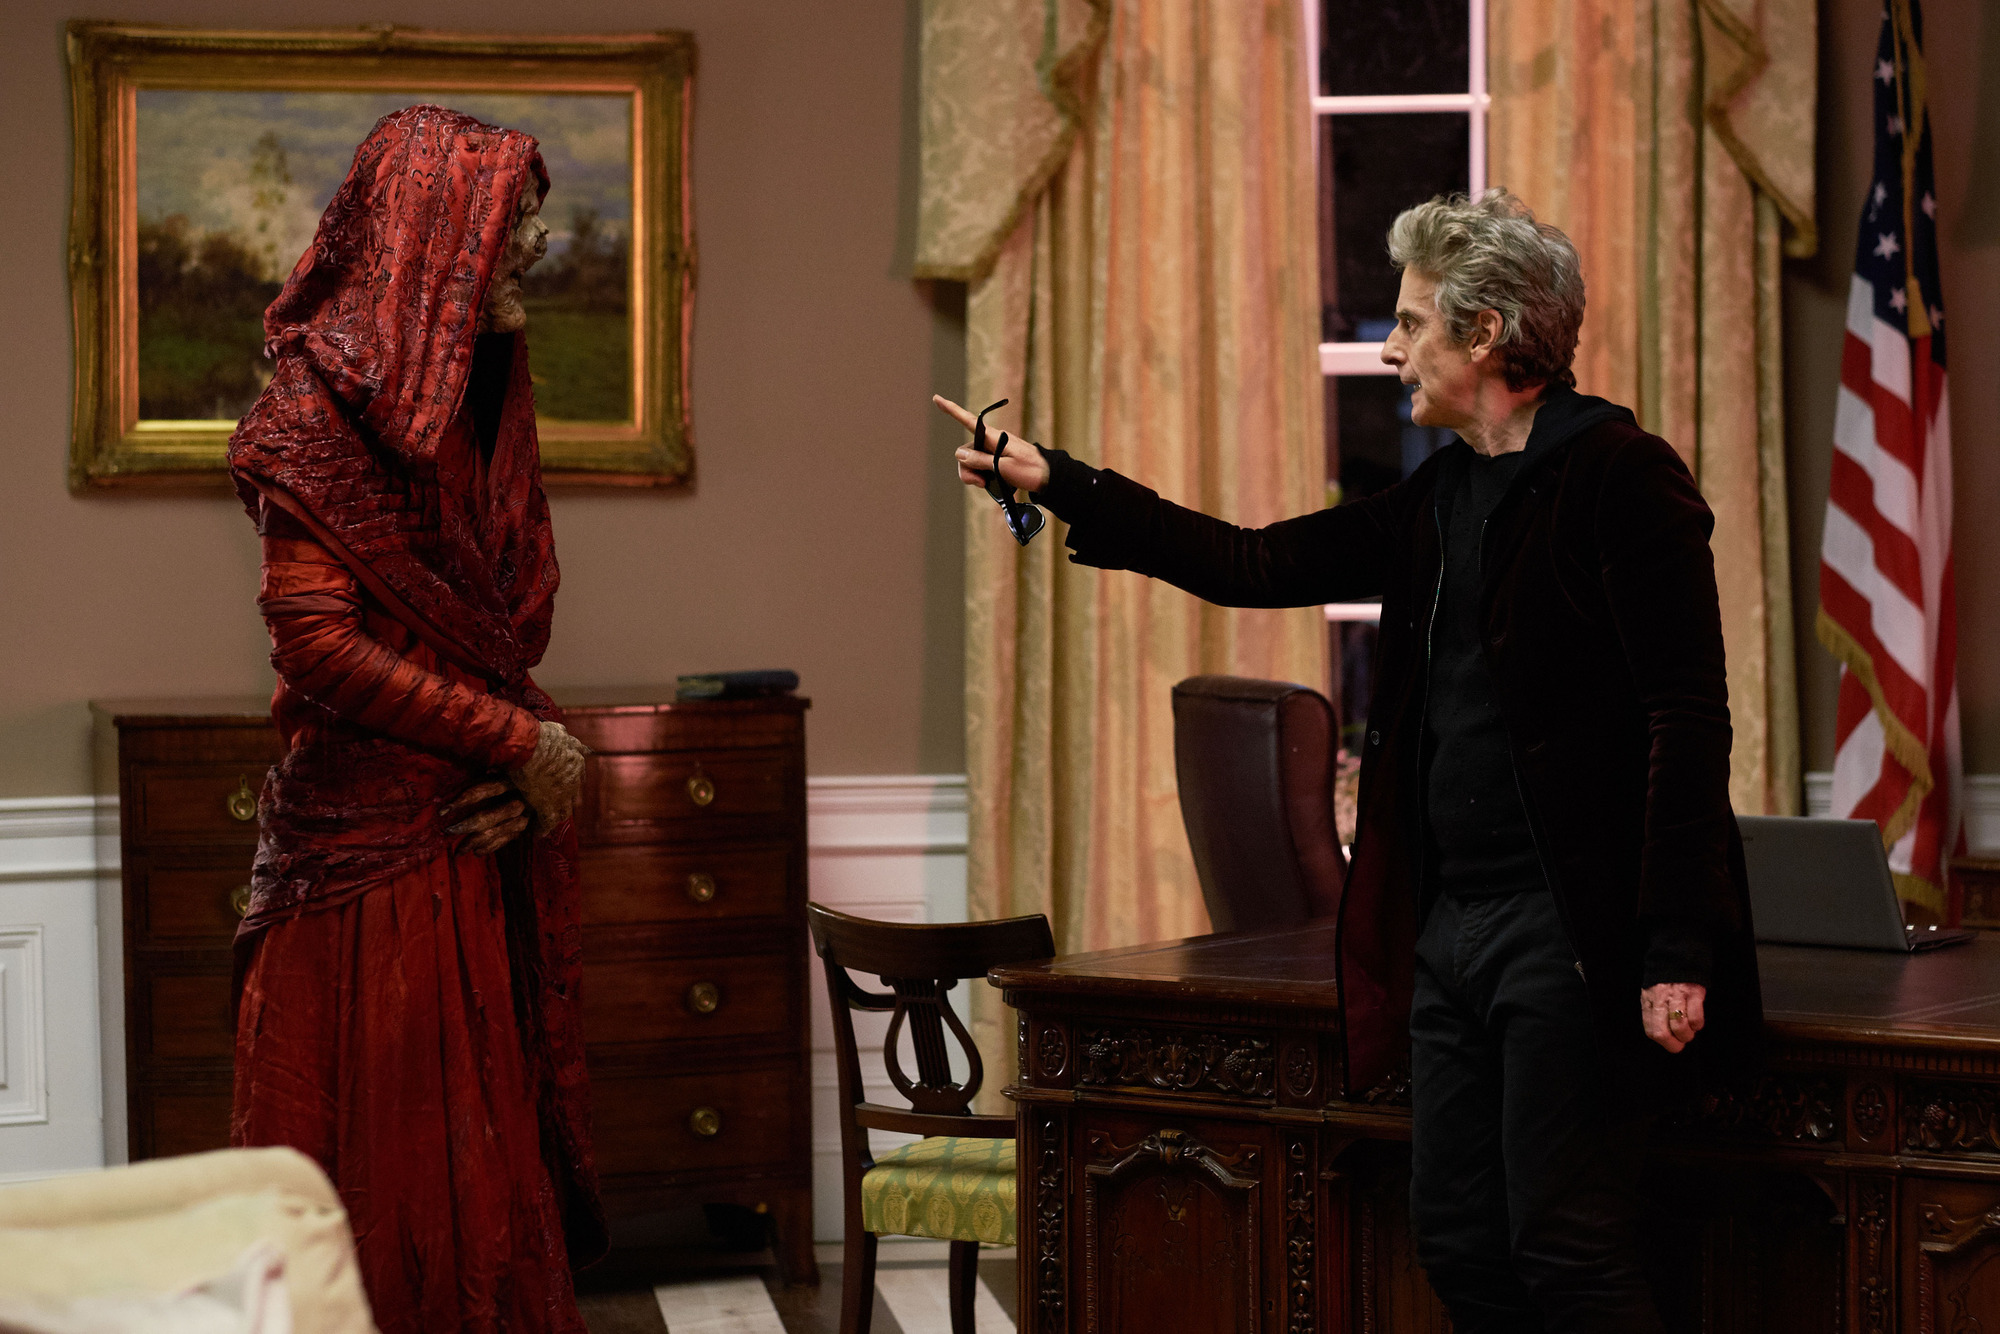 Monk, The Doctor (PETER CAPALDI)